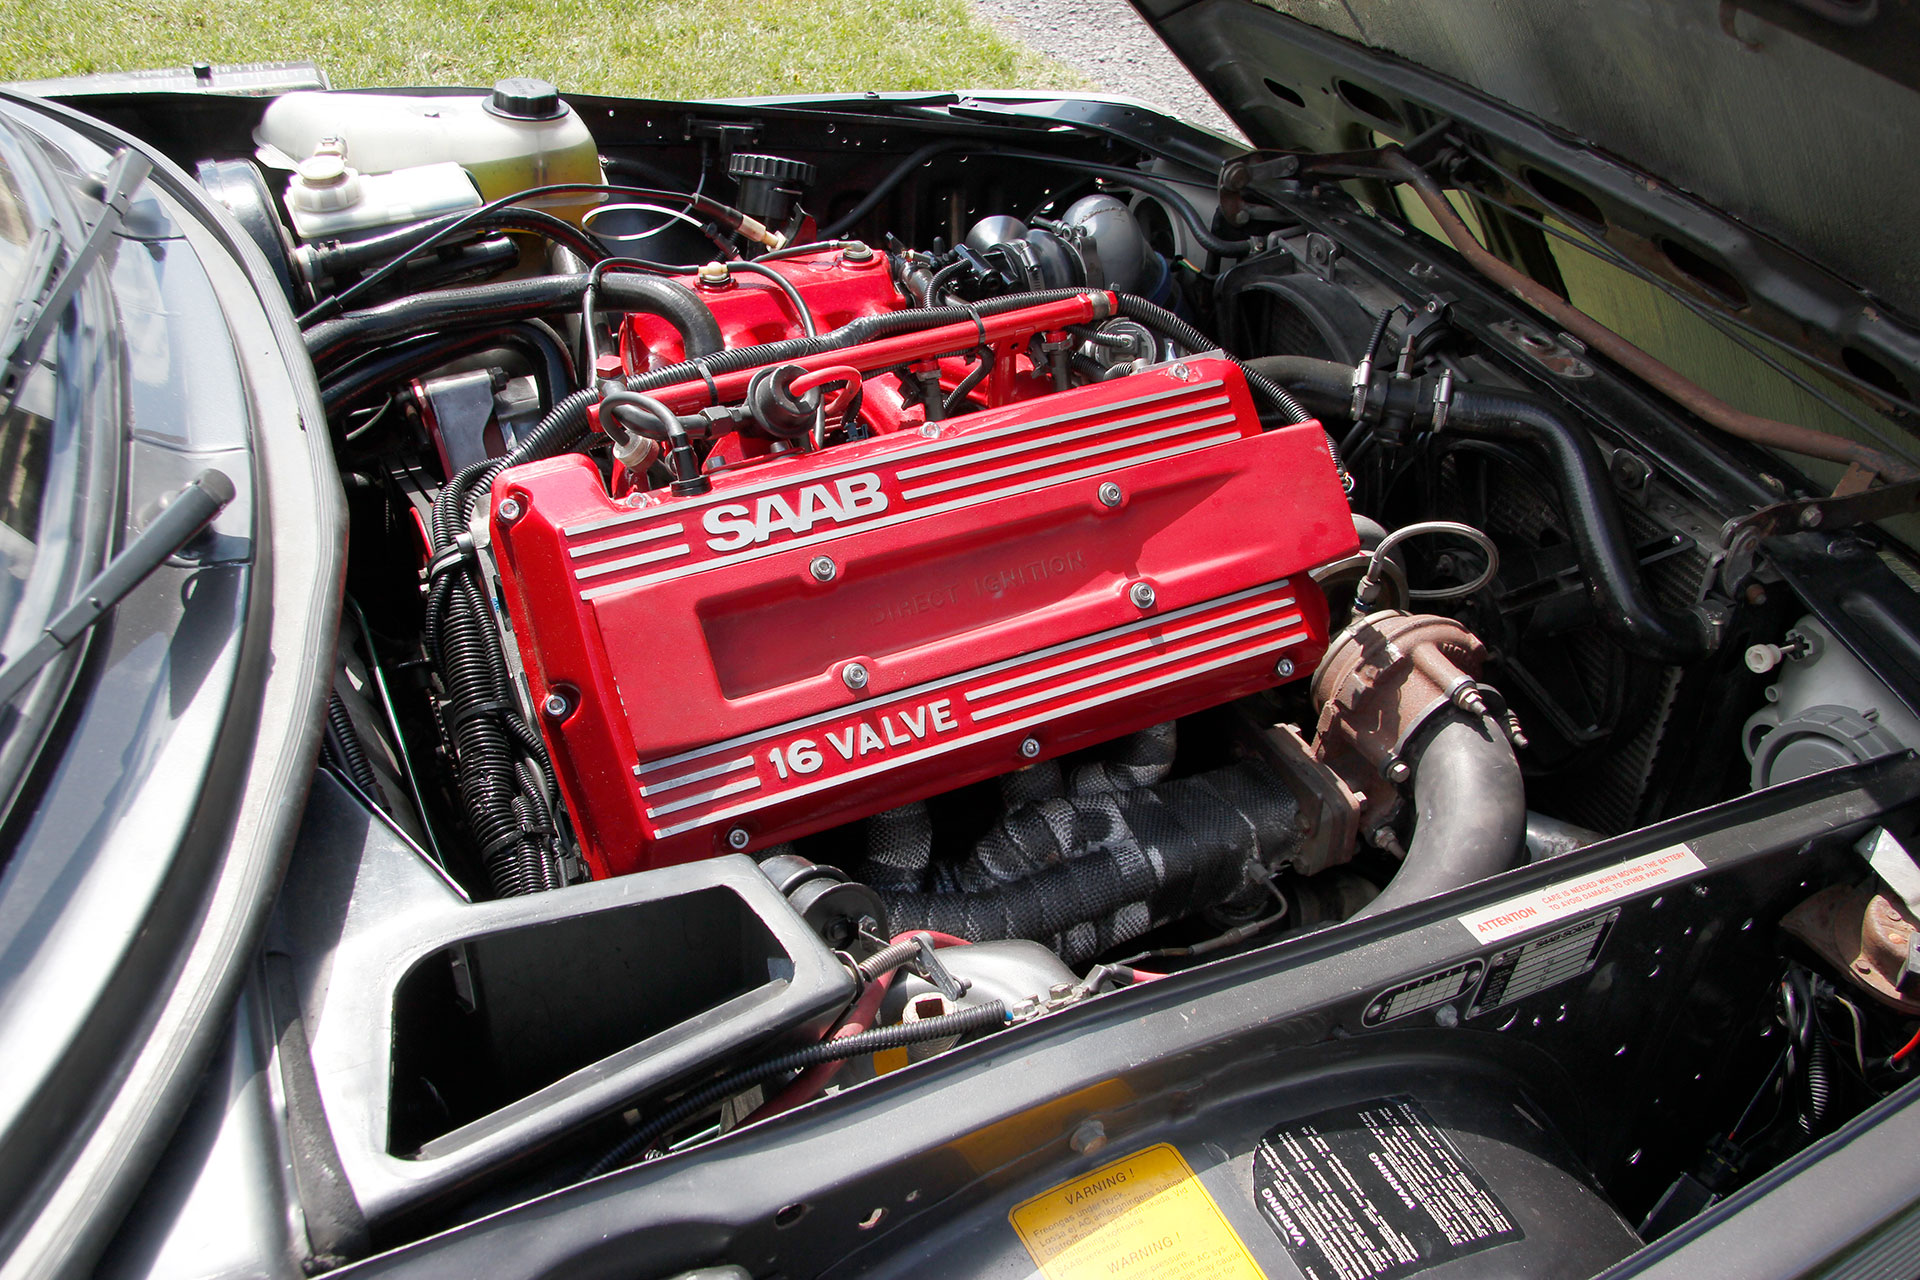 Saab 900 Trionic 5 Conversion Kits Reach End Of Production • eEuroparts.com  BlogeEuroparts.com